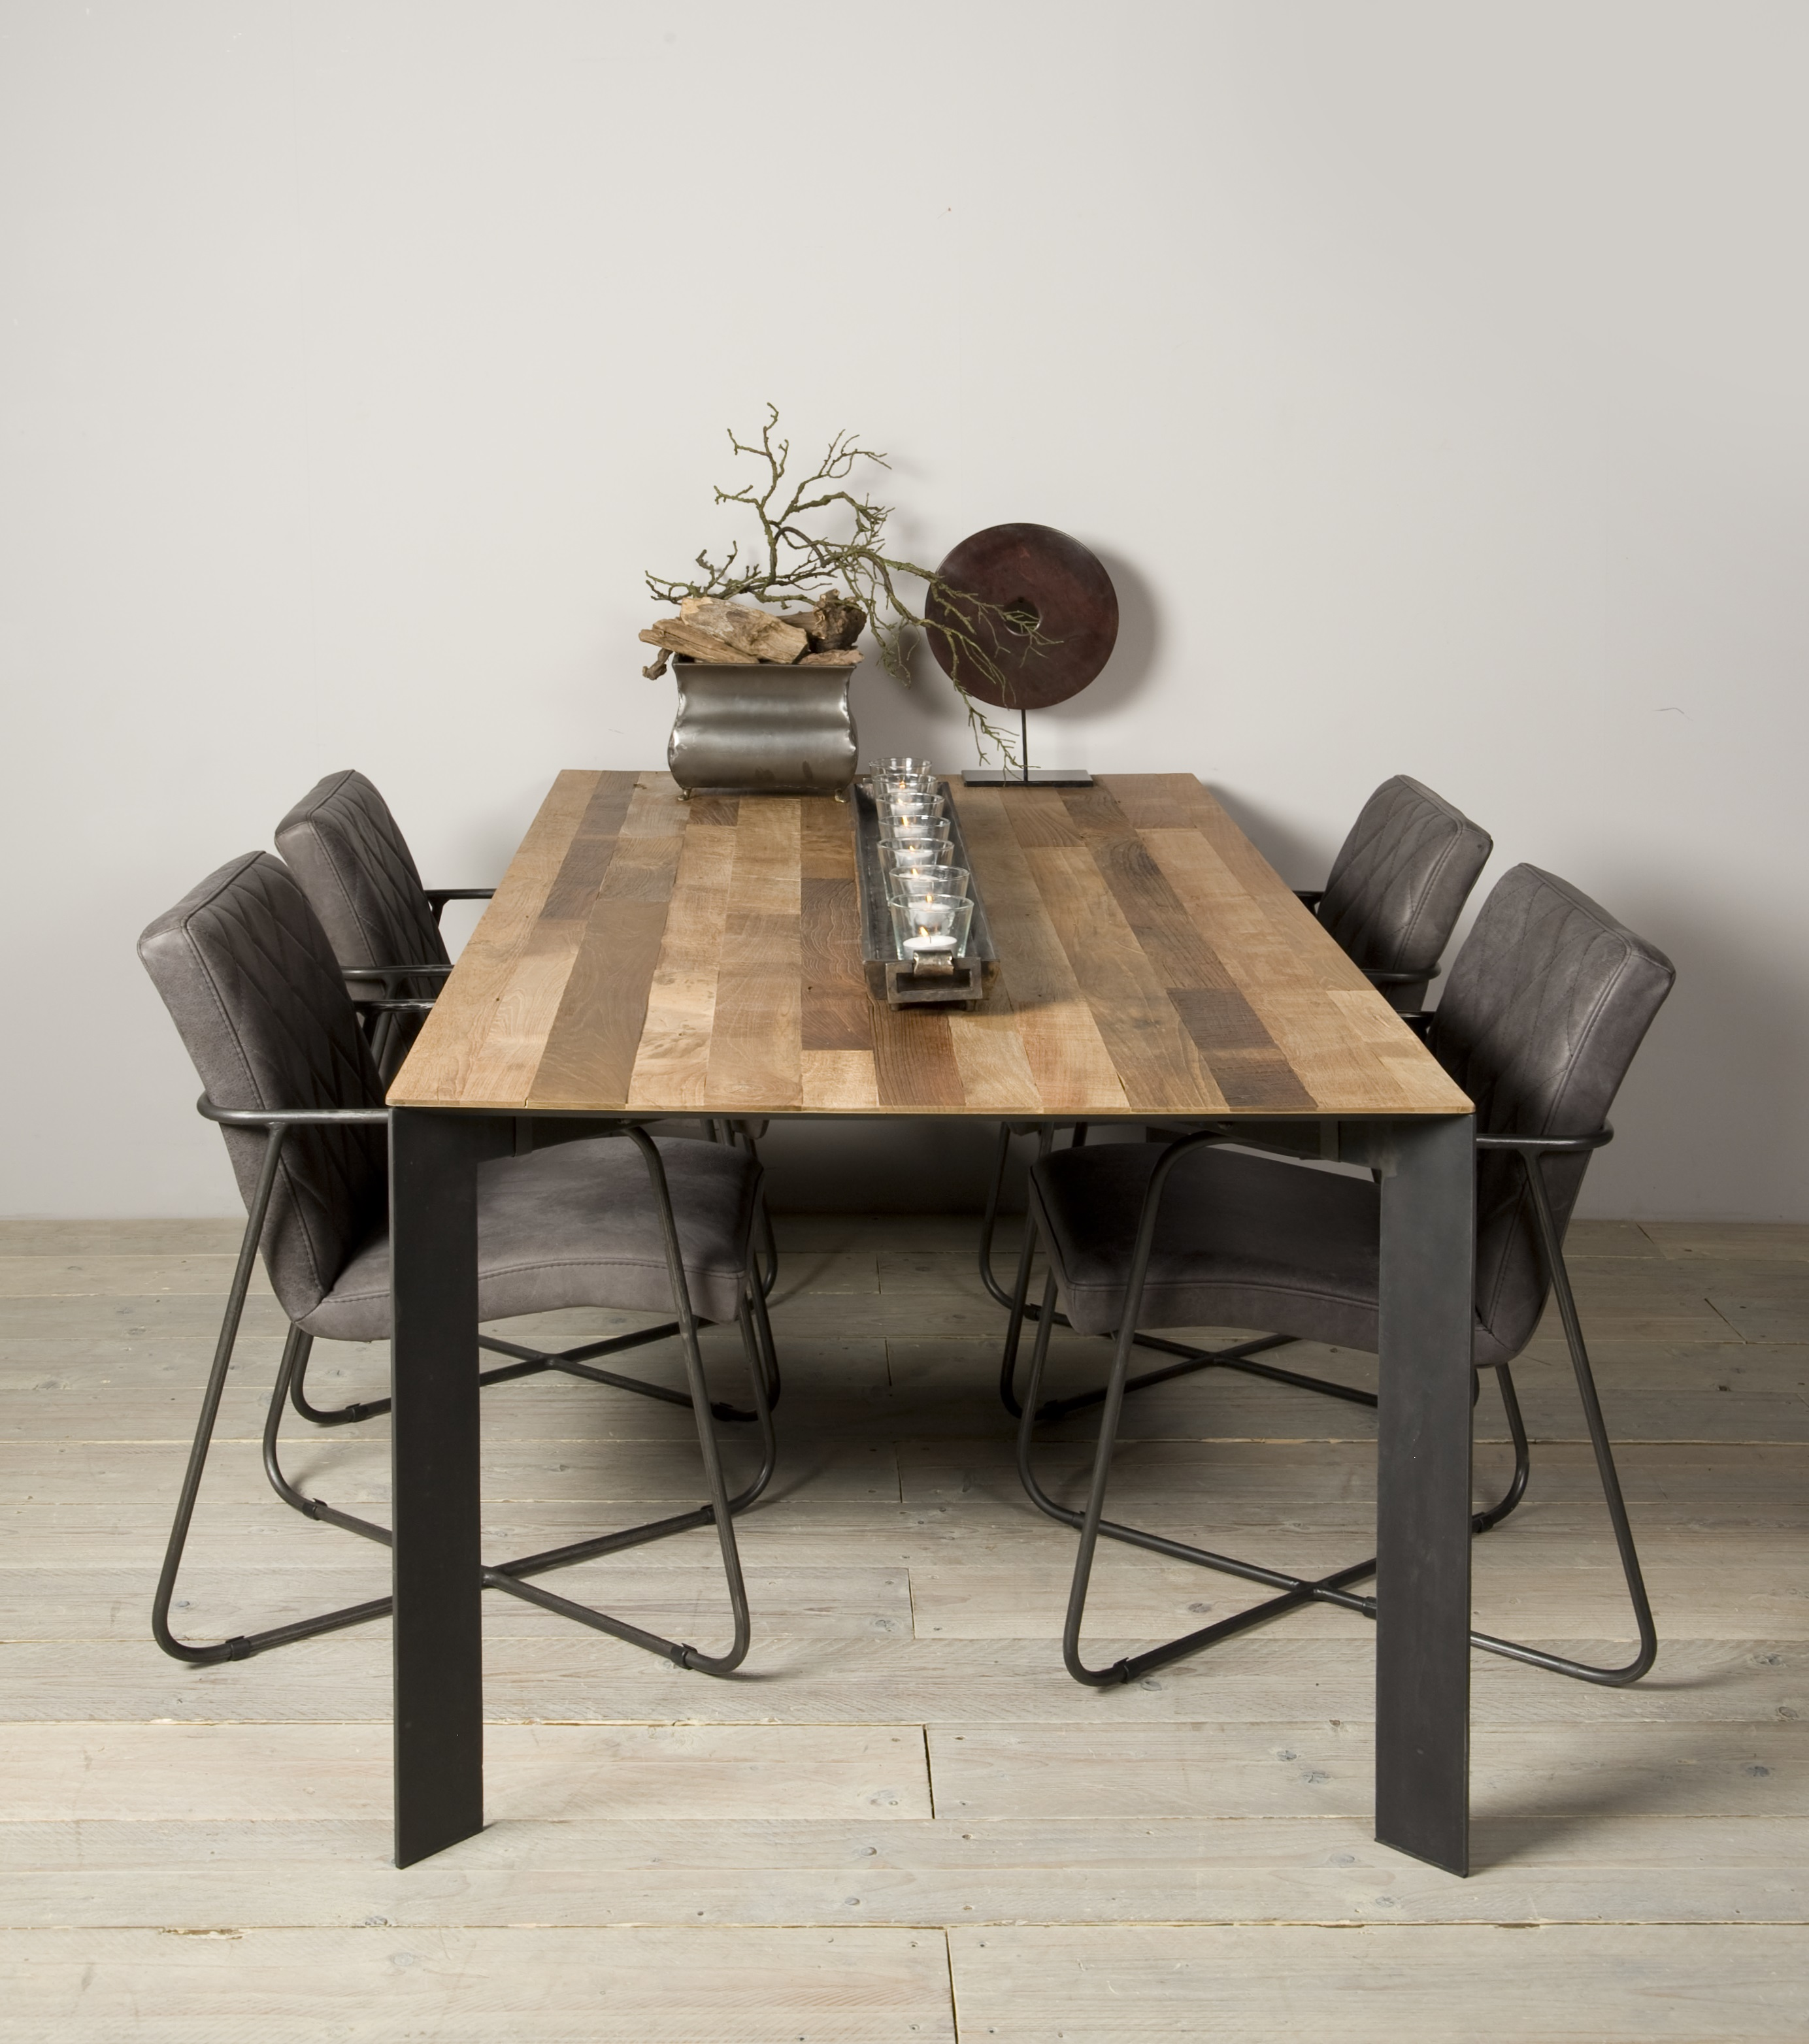 Aberdeen Dining Table Staal Teakhout 200 Cm